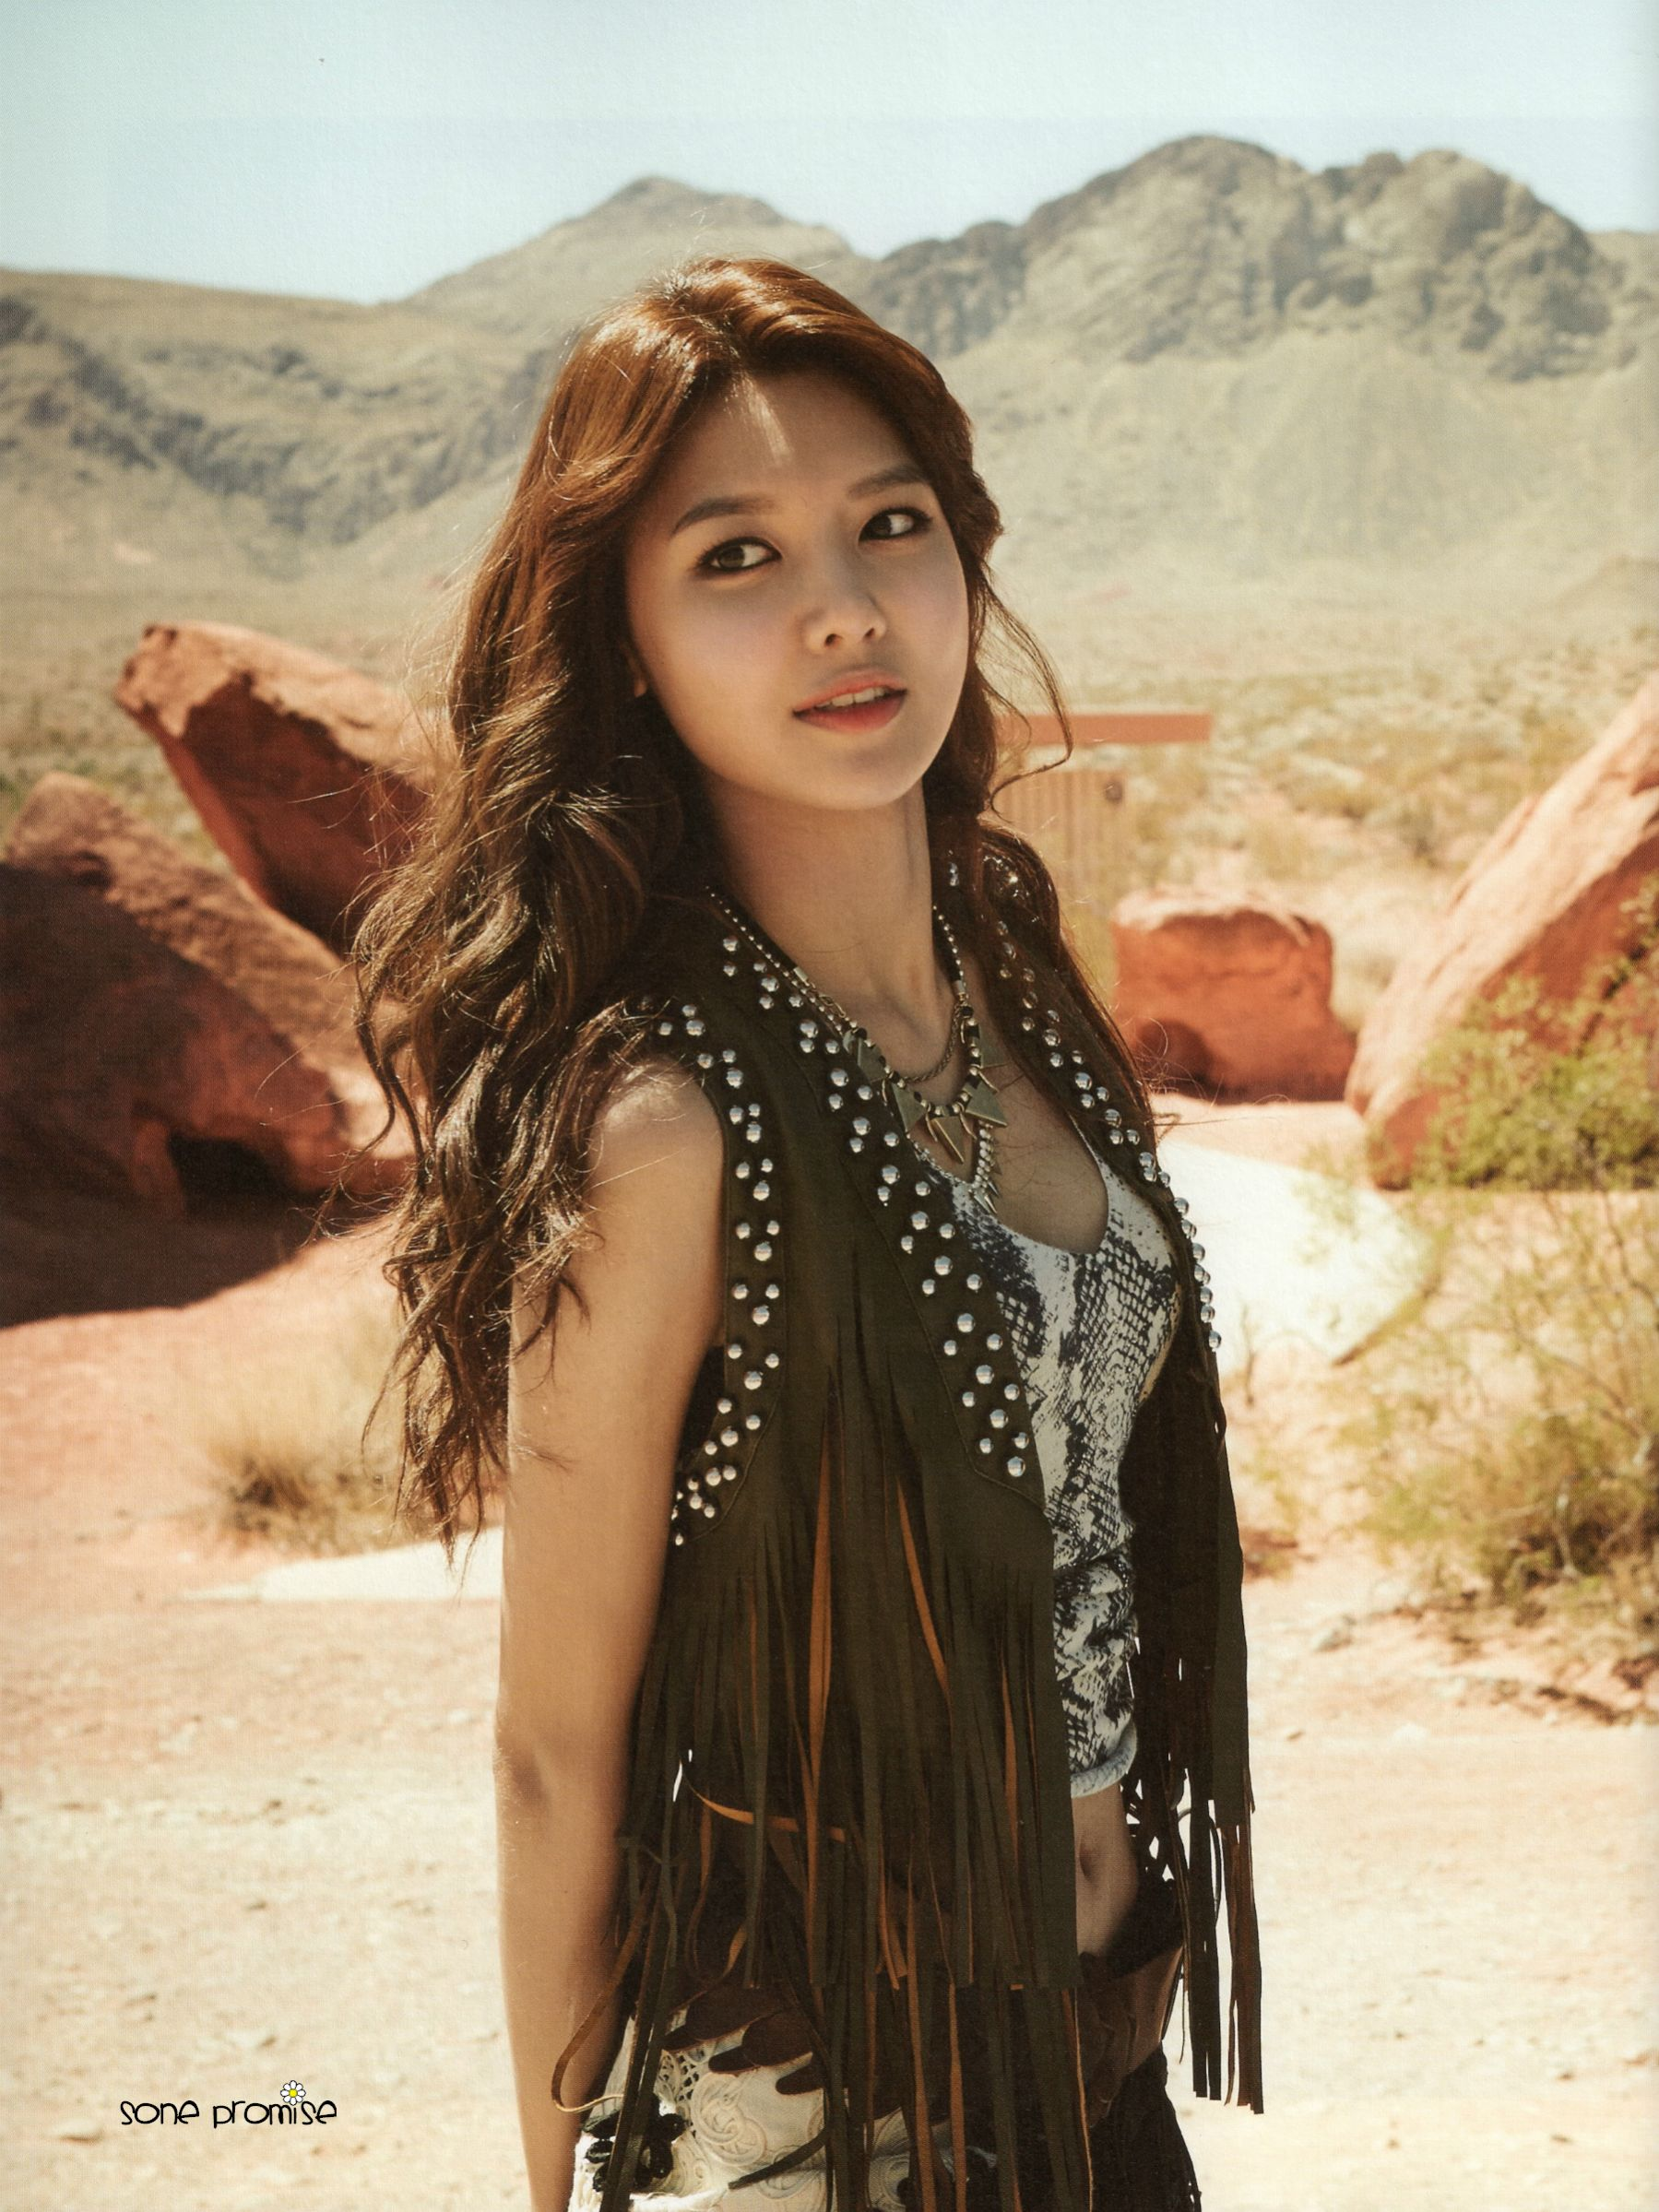 Single Girl Hd Wallpaper Scan Sooyoung At Girls Generation In La Photobook All